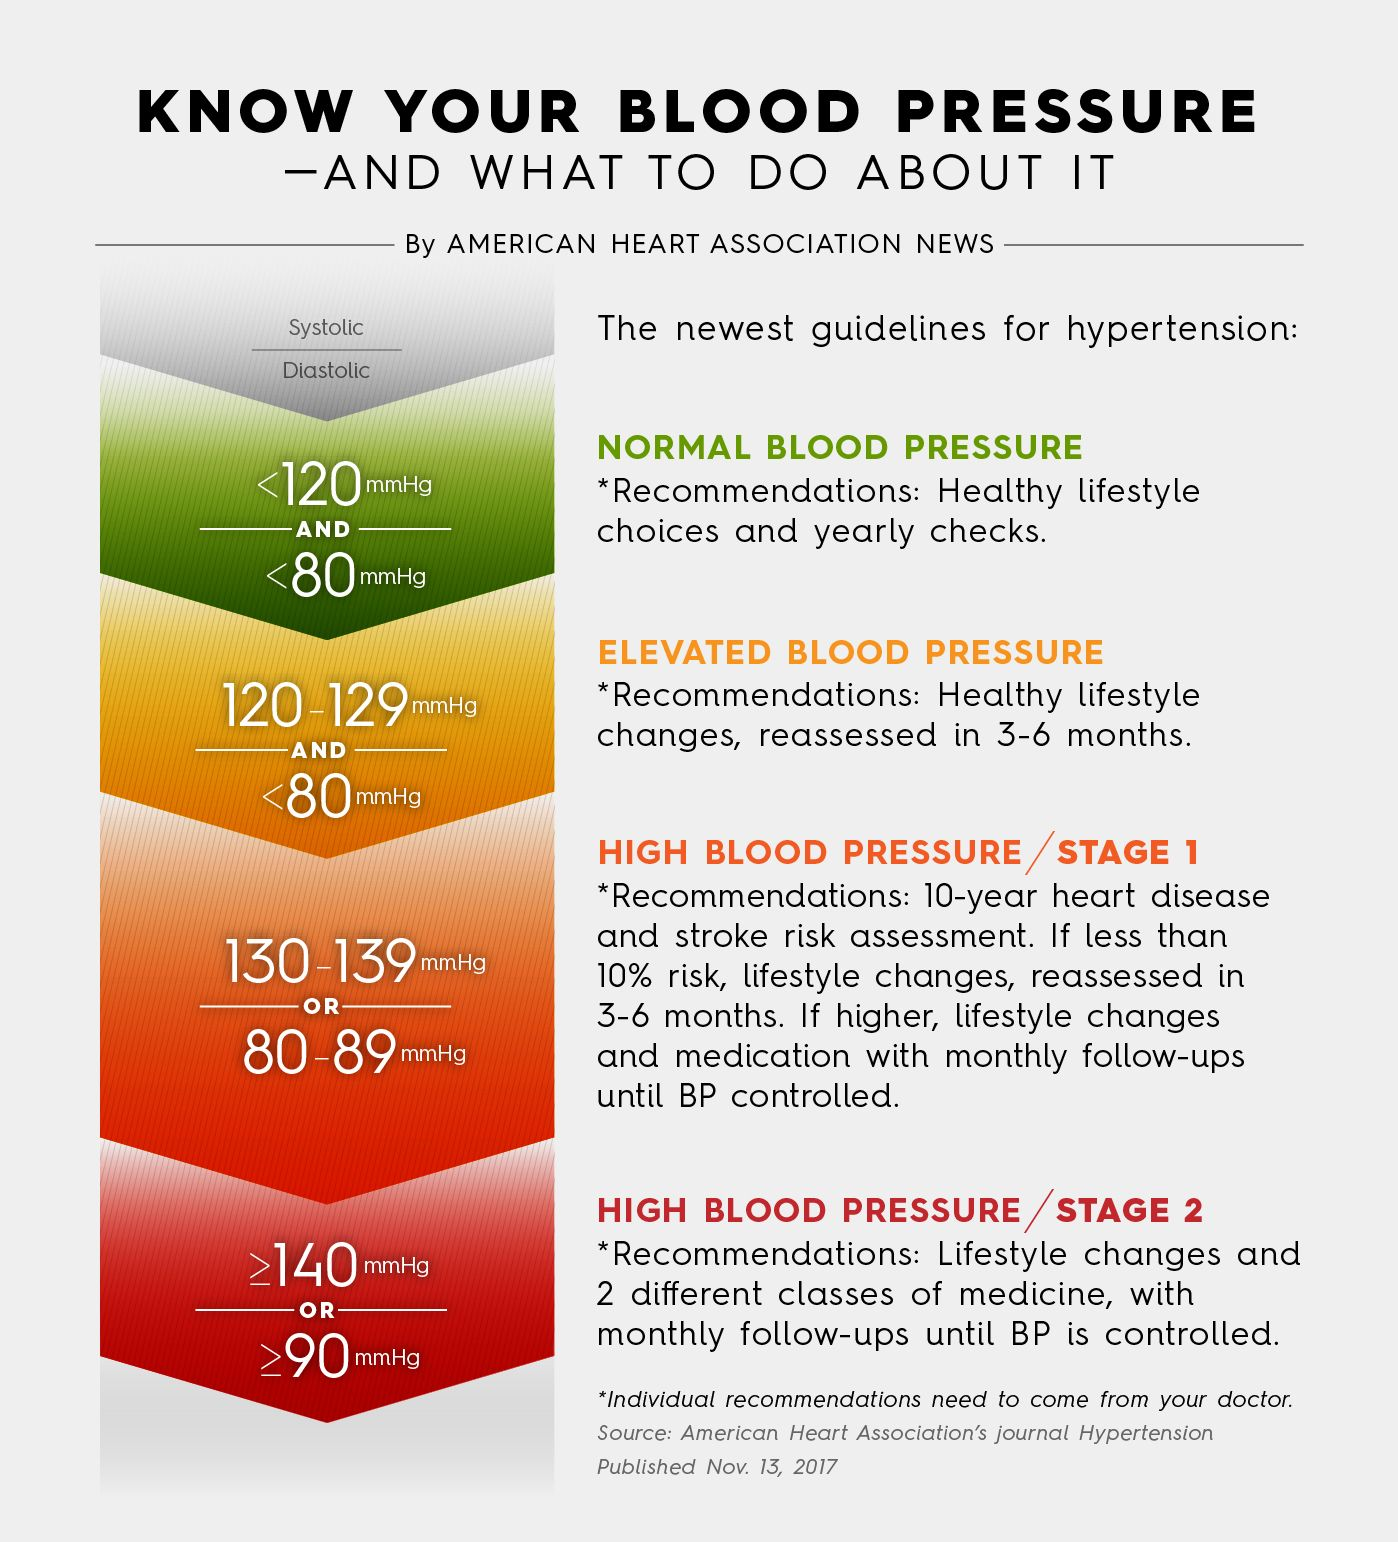 High blood pressure is redefined as 130, not 140: USA  guidelines